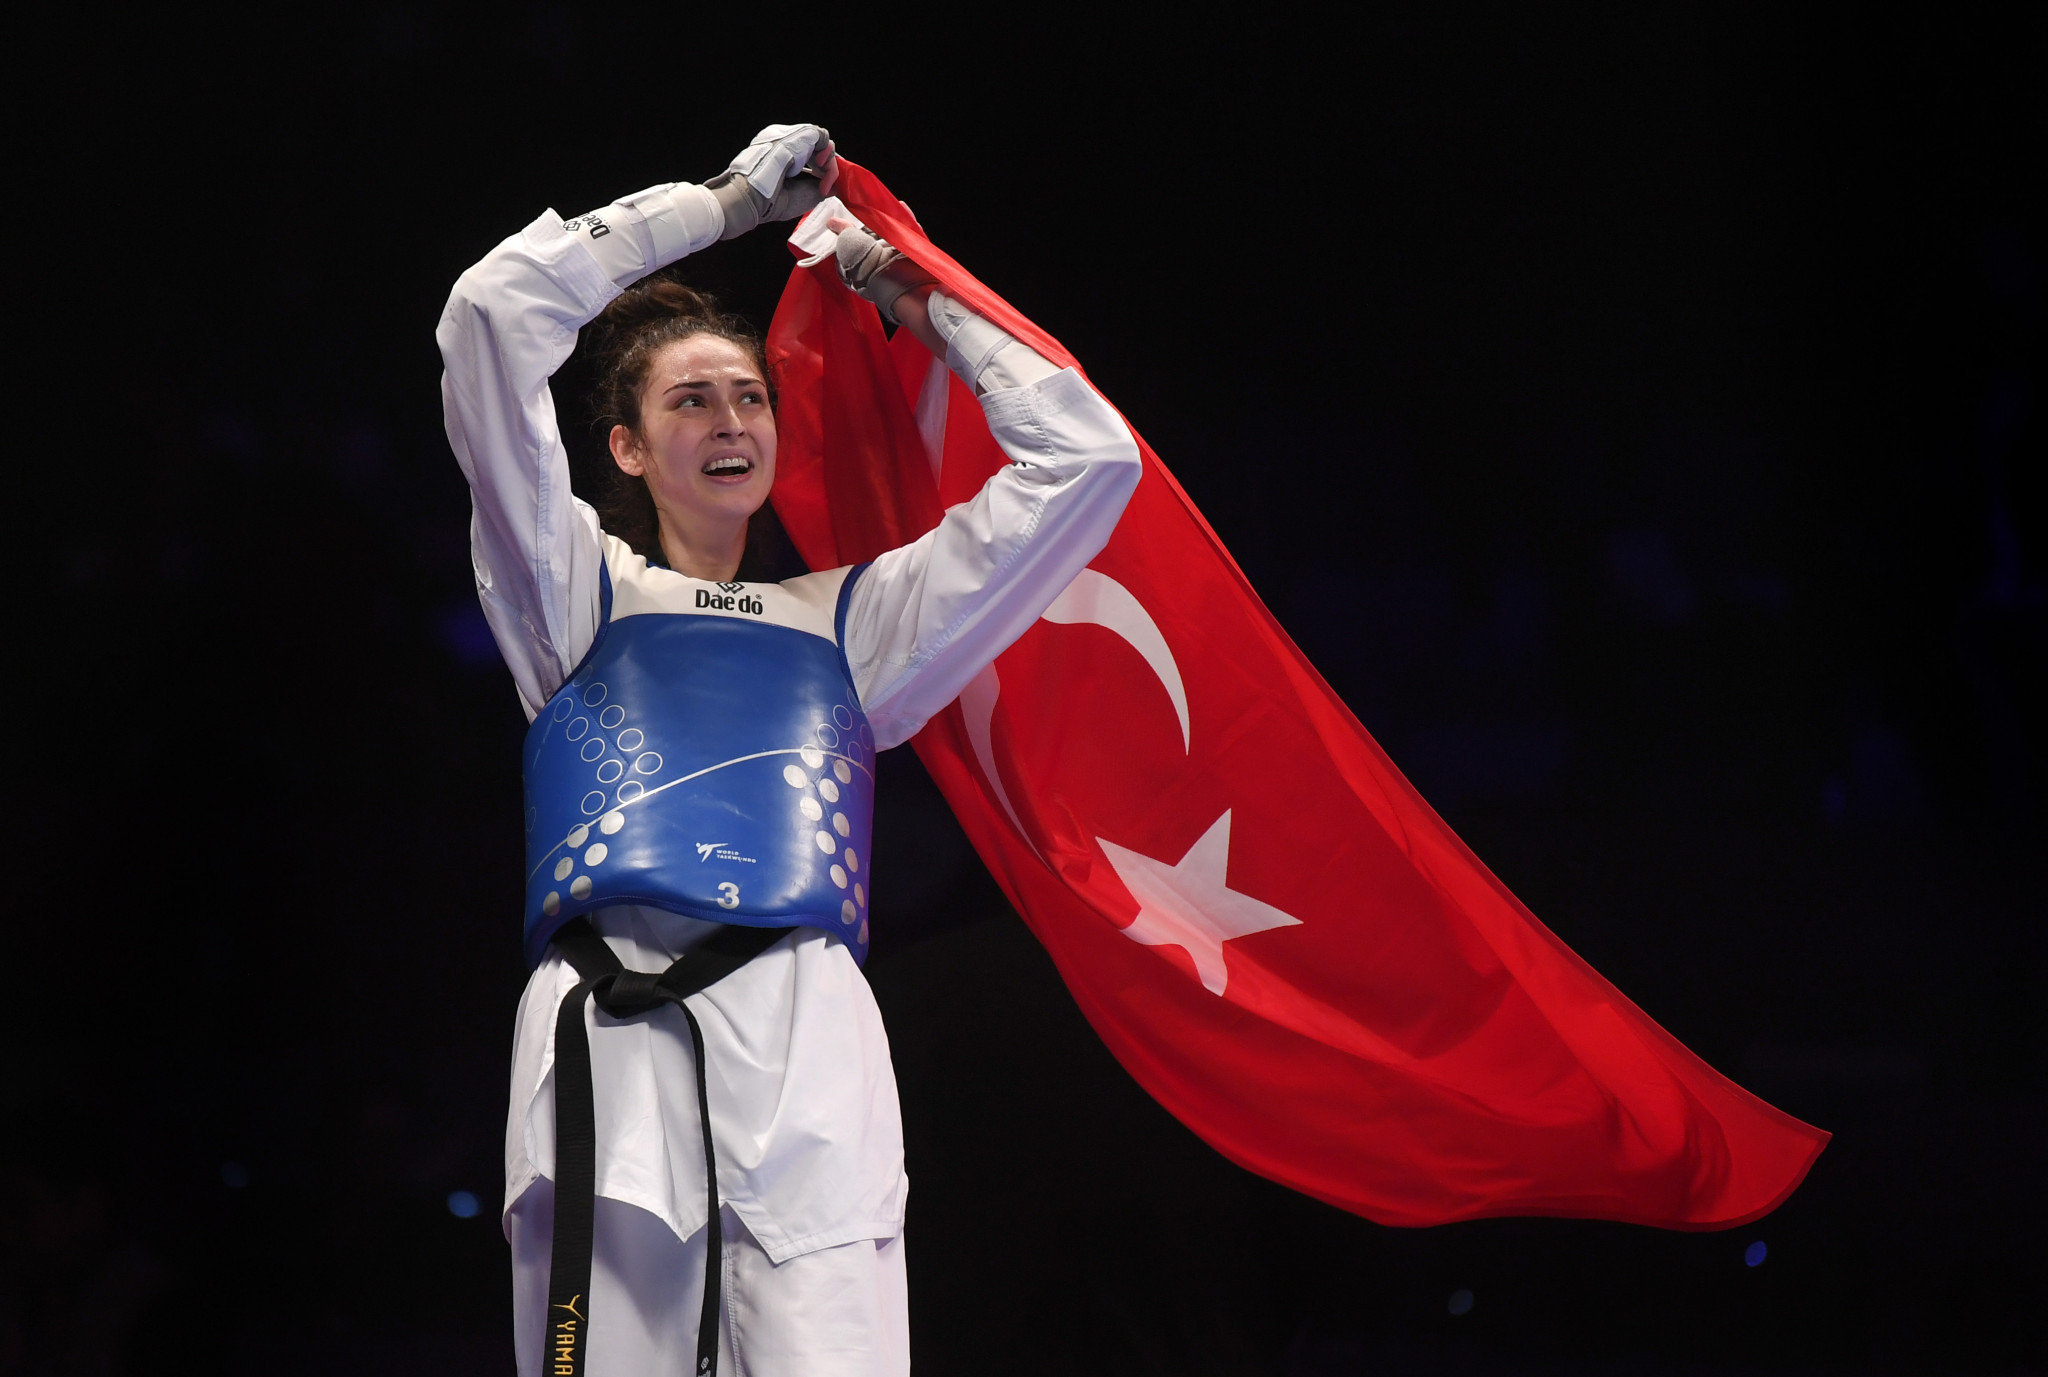 Turkey's Irem Yaman reclaimed the women's under-62kg world title, having won it in 2015 ©Getty Images